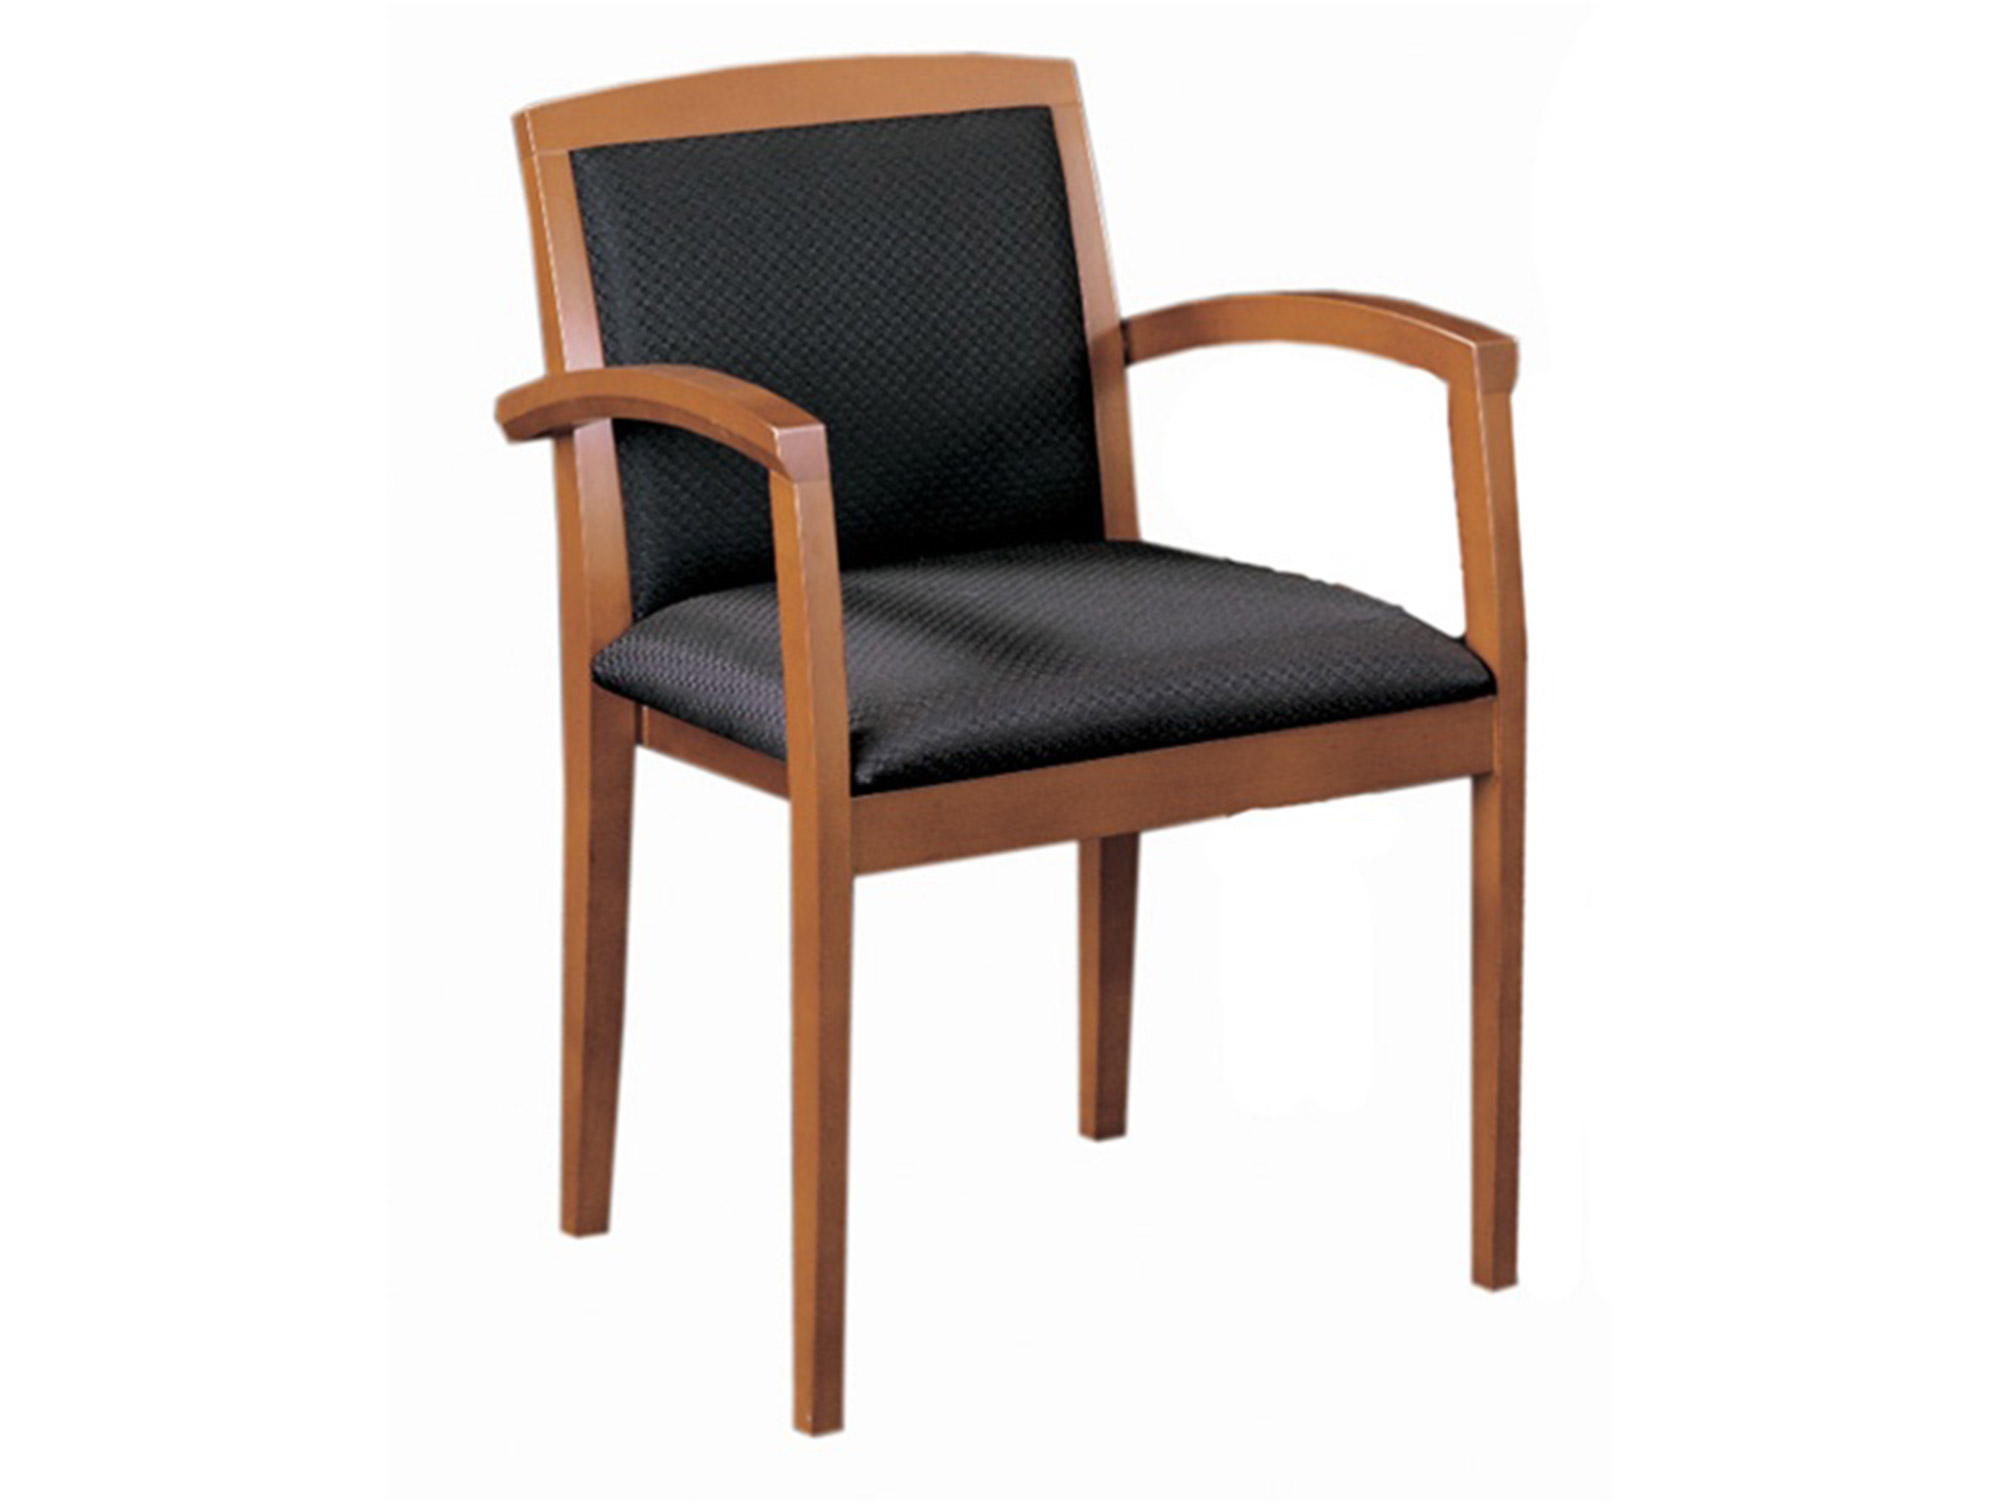 Chairs For Office #Chair-29-30